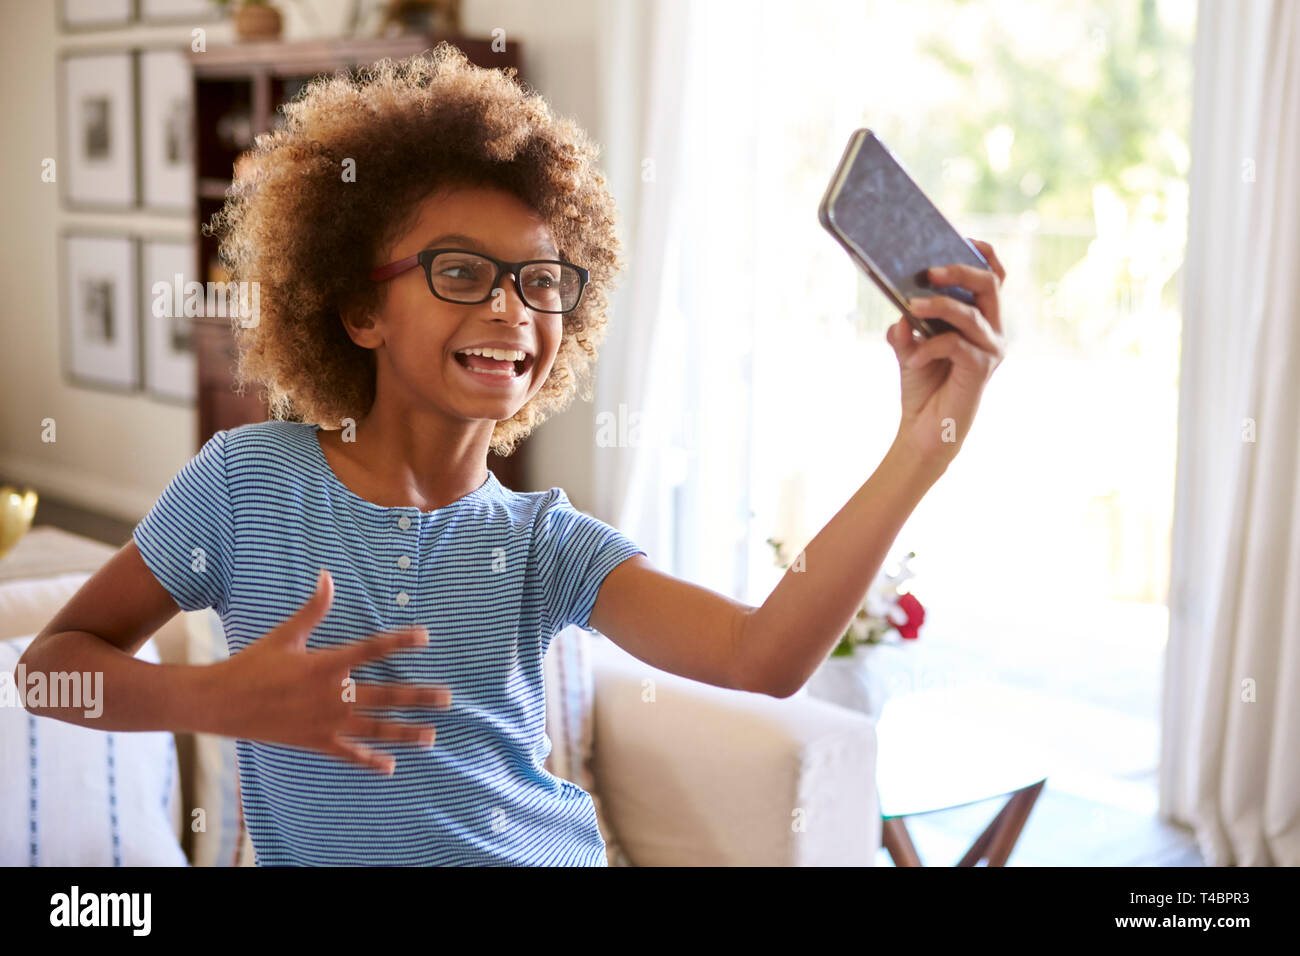 Pre-teen girl filming herself singing using a social media app on her smartphone, close up - Stock Image